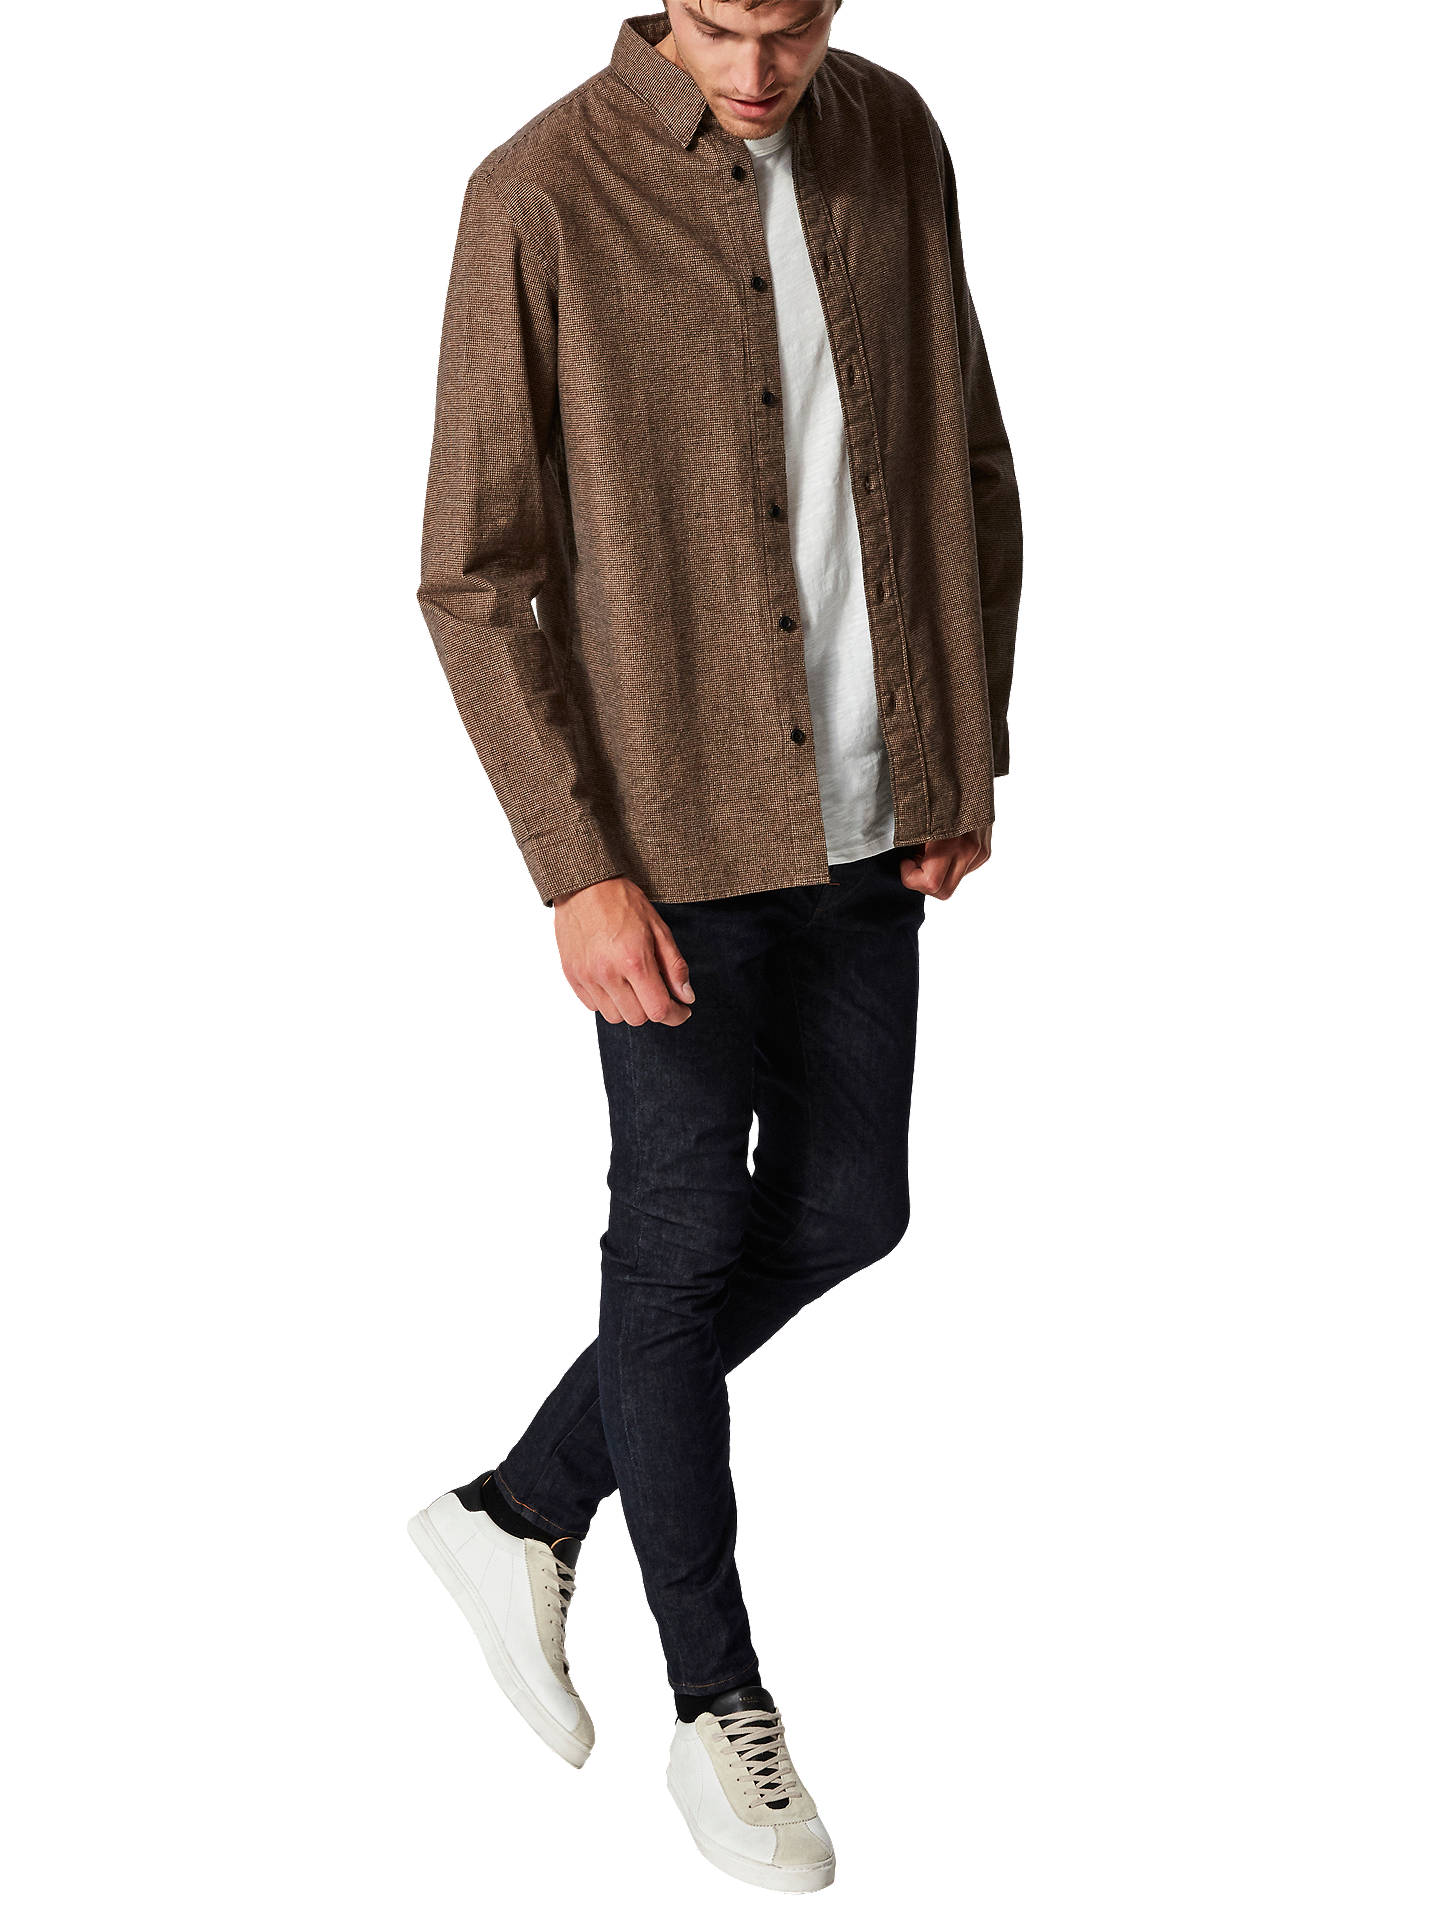 BuySelected Homme Lucas Shirt, Black/Sand, M Online at johnlewis.com